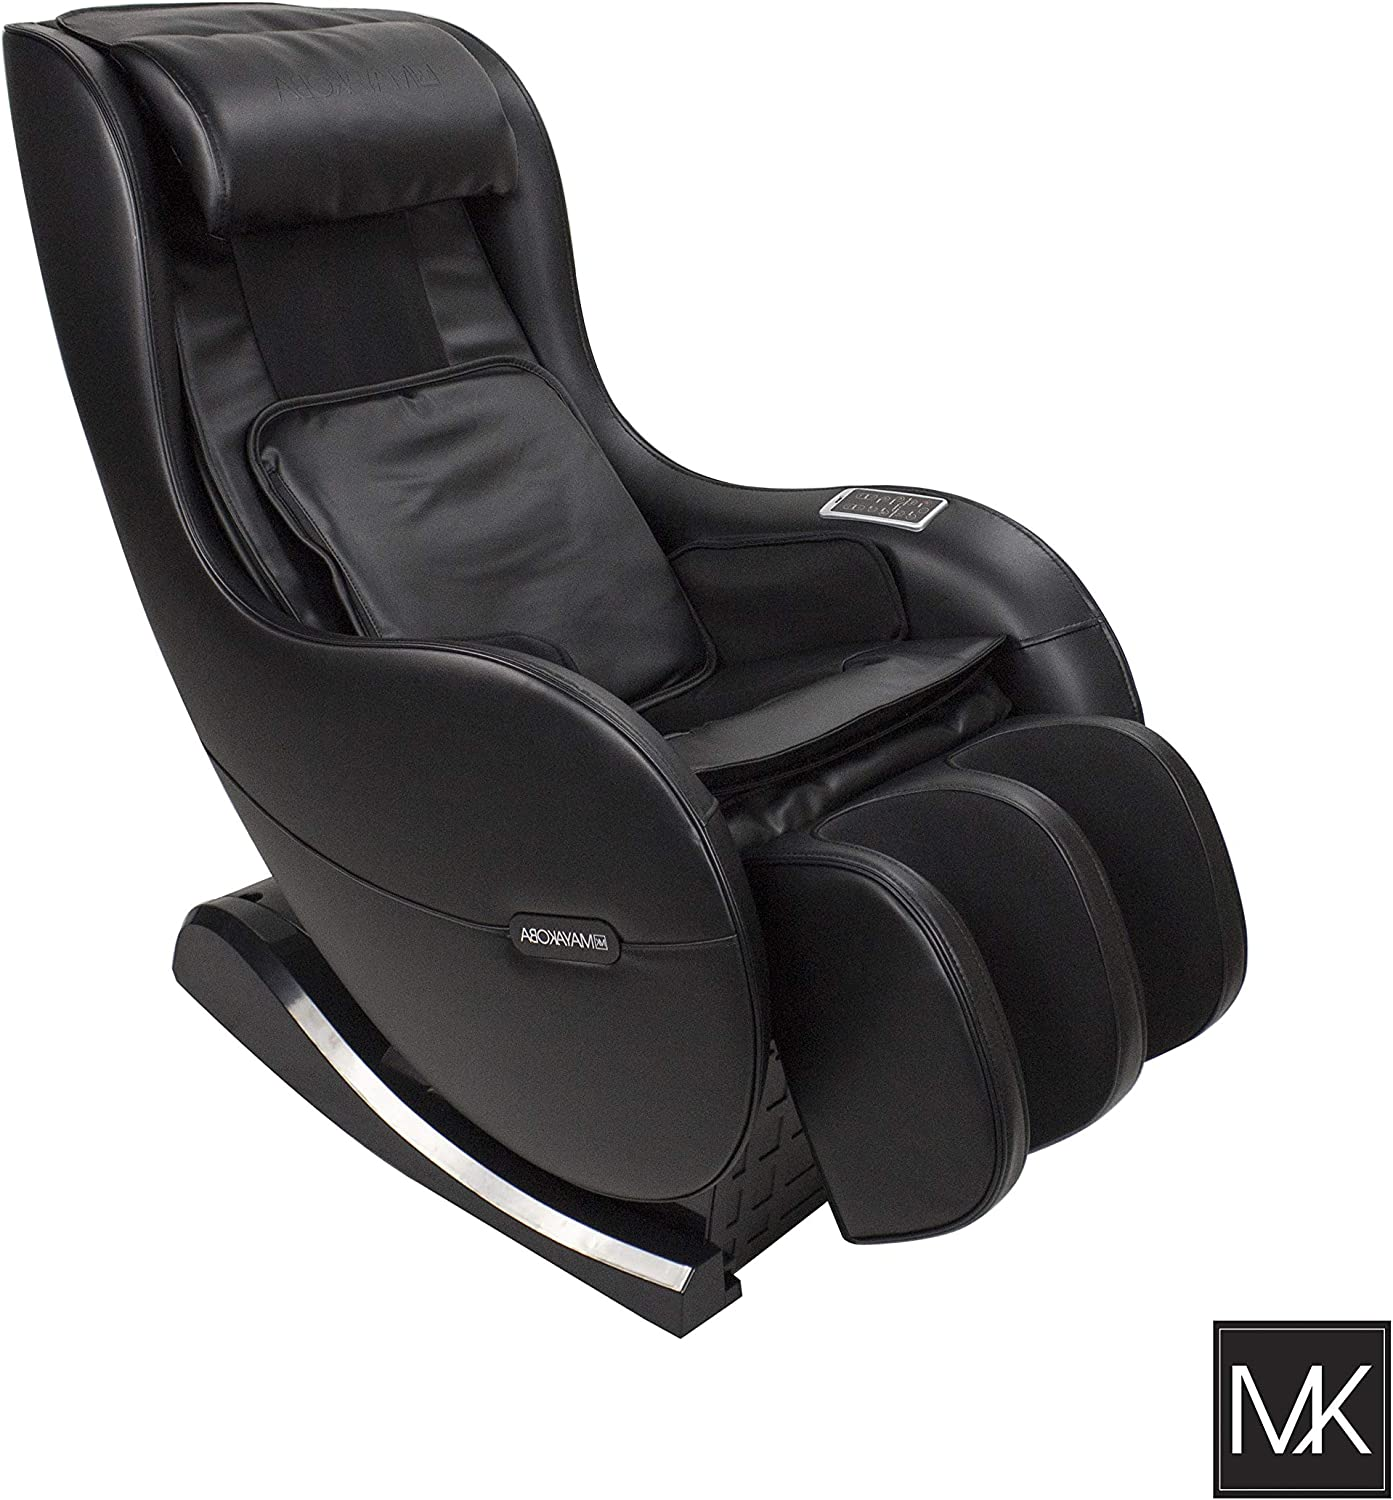 MAYAKOBA Full Body Shiatsu Massage Chair Zero Gravity Recliner Kneading, Knocking Compact Massage Chair with USB, Bluetooth and Speakers